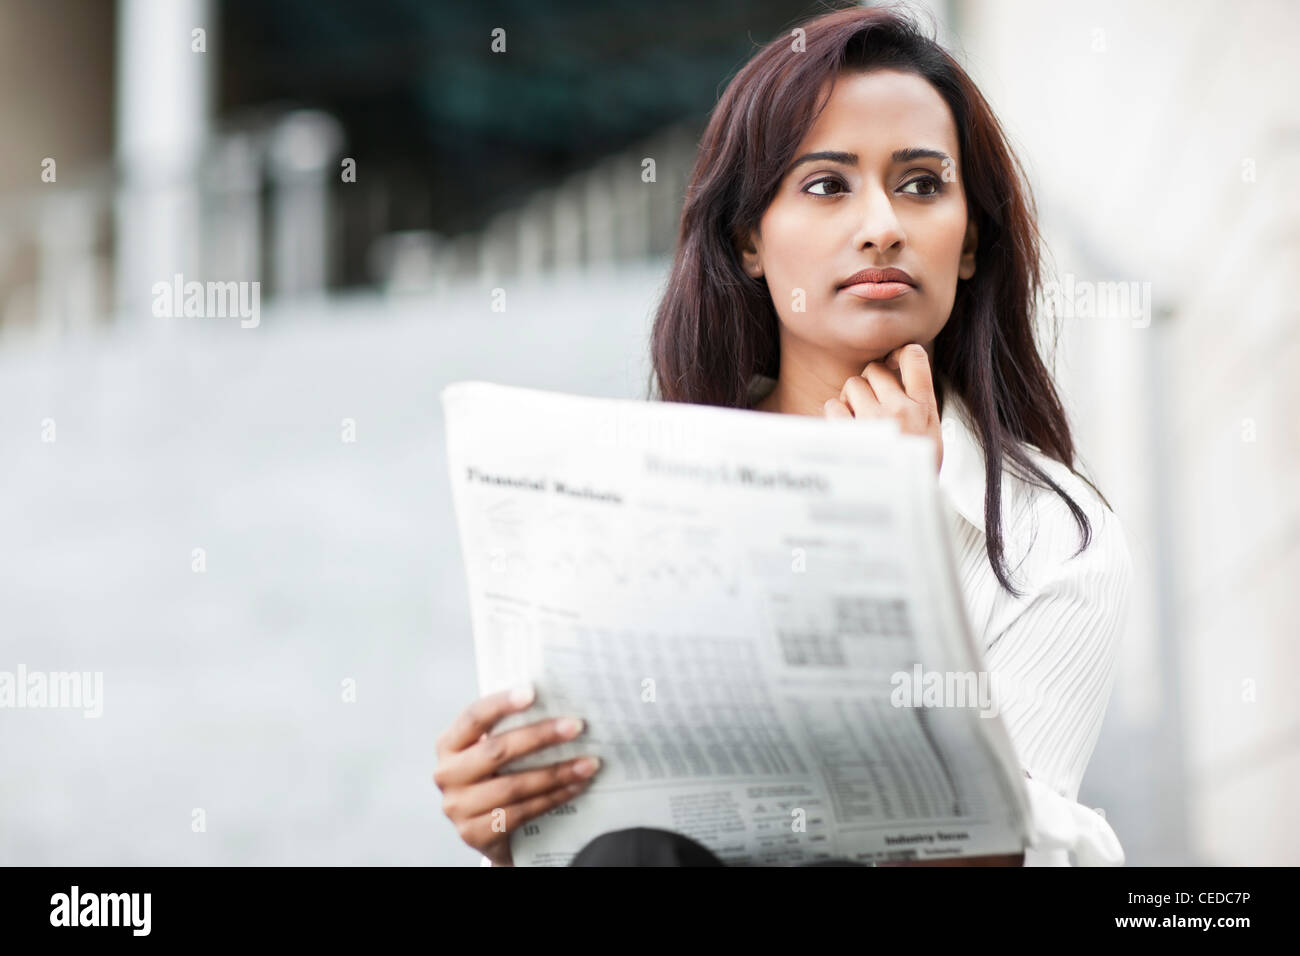 Imprenditrice indiano quotidiano di lettura all'aperto Foto Stock